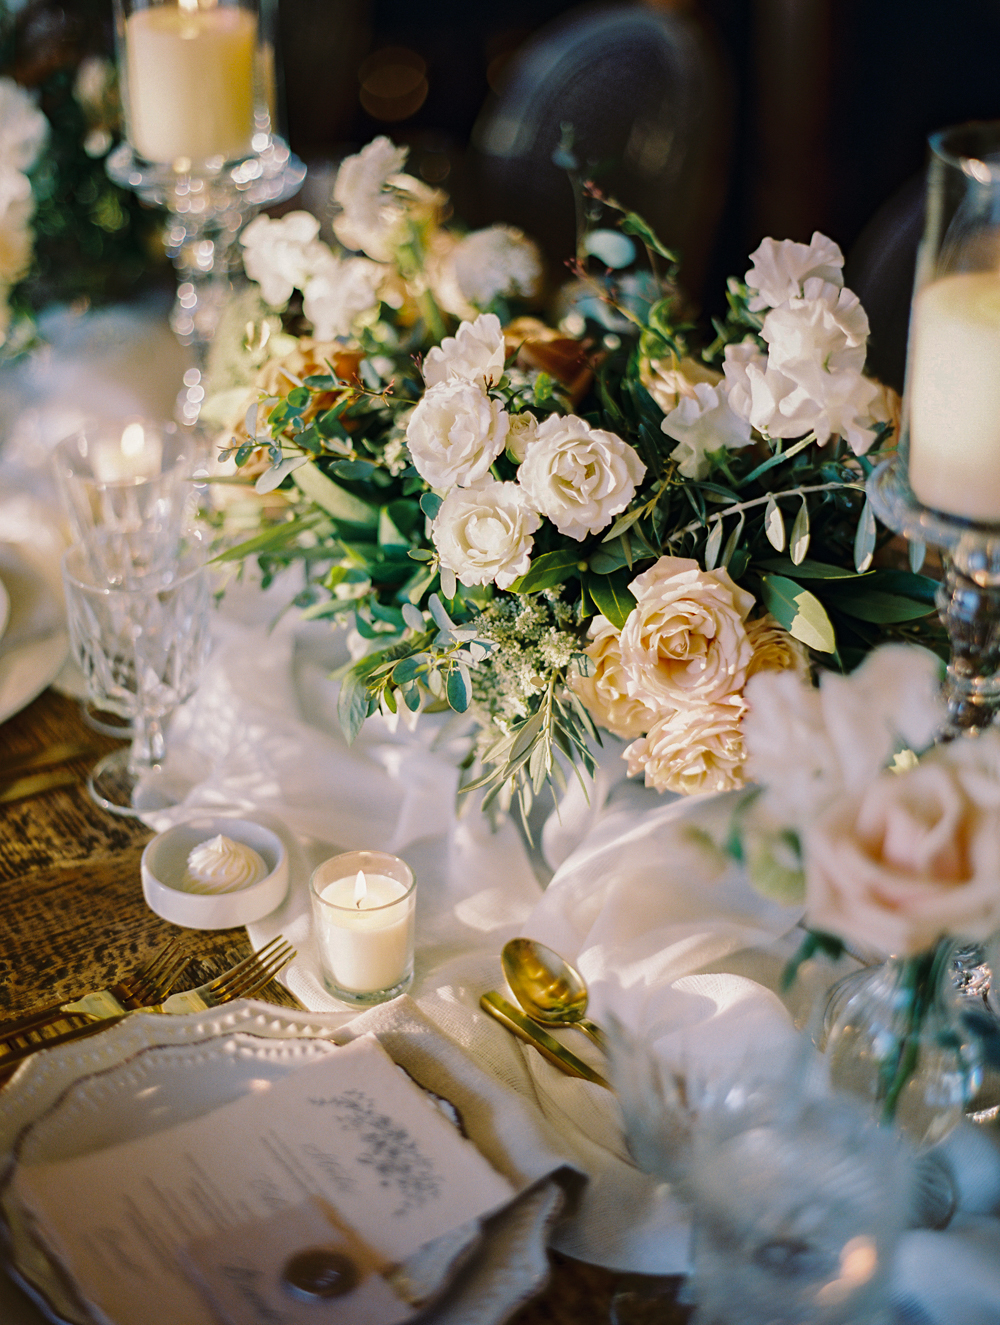 romantic wedding reception with candles and garden florals